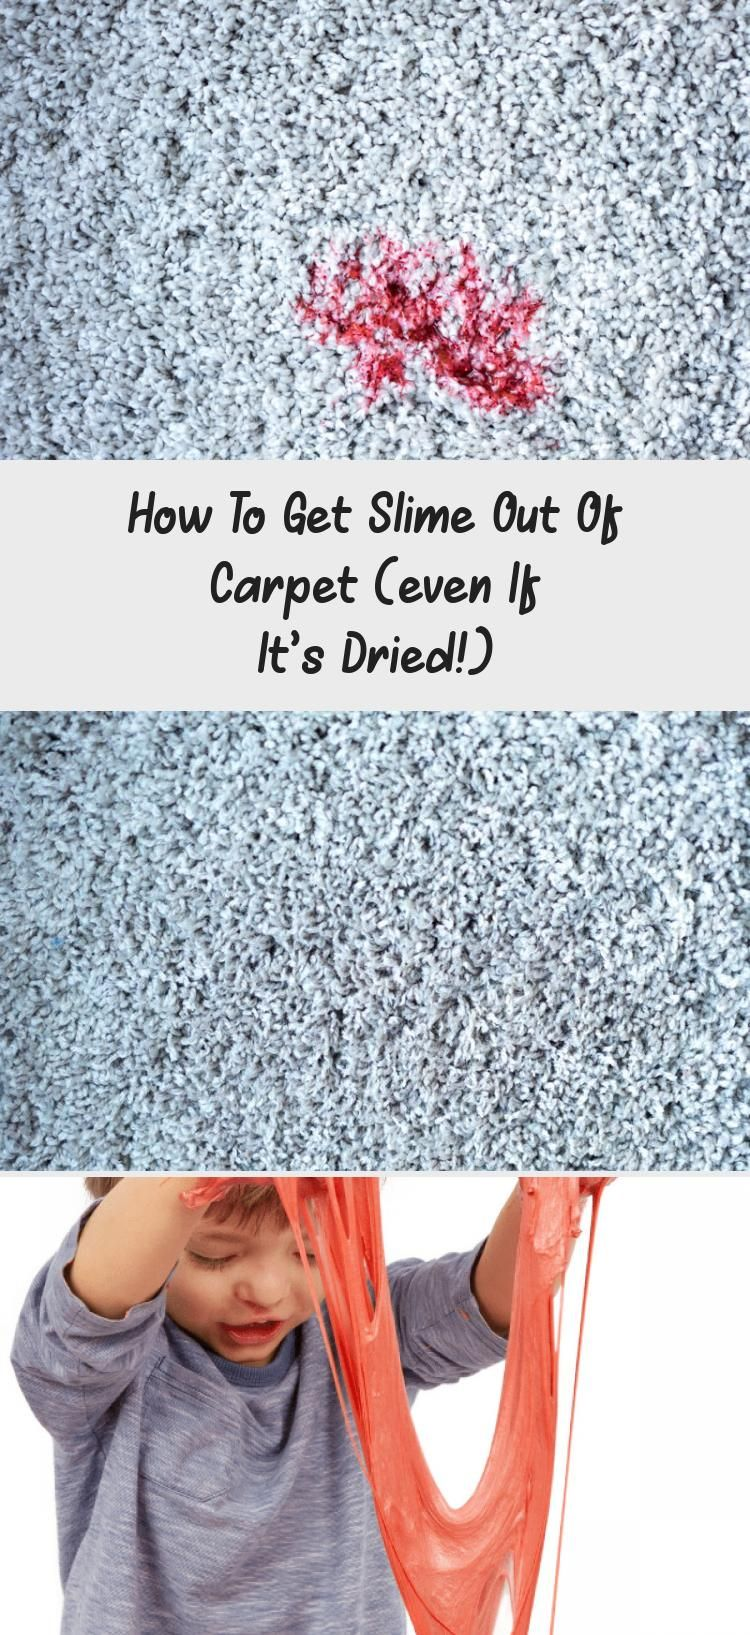 How To Get Slime Out Of Carpet Very Easy Cleaning Tip For How To Get Dried Slime Out Of Carpet It S Easy To Remove Slime Fro How To Clean Carpet Carpet